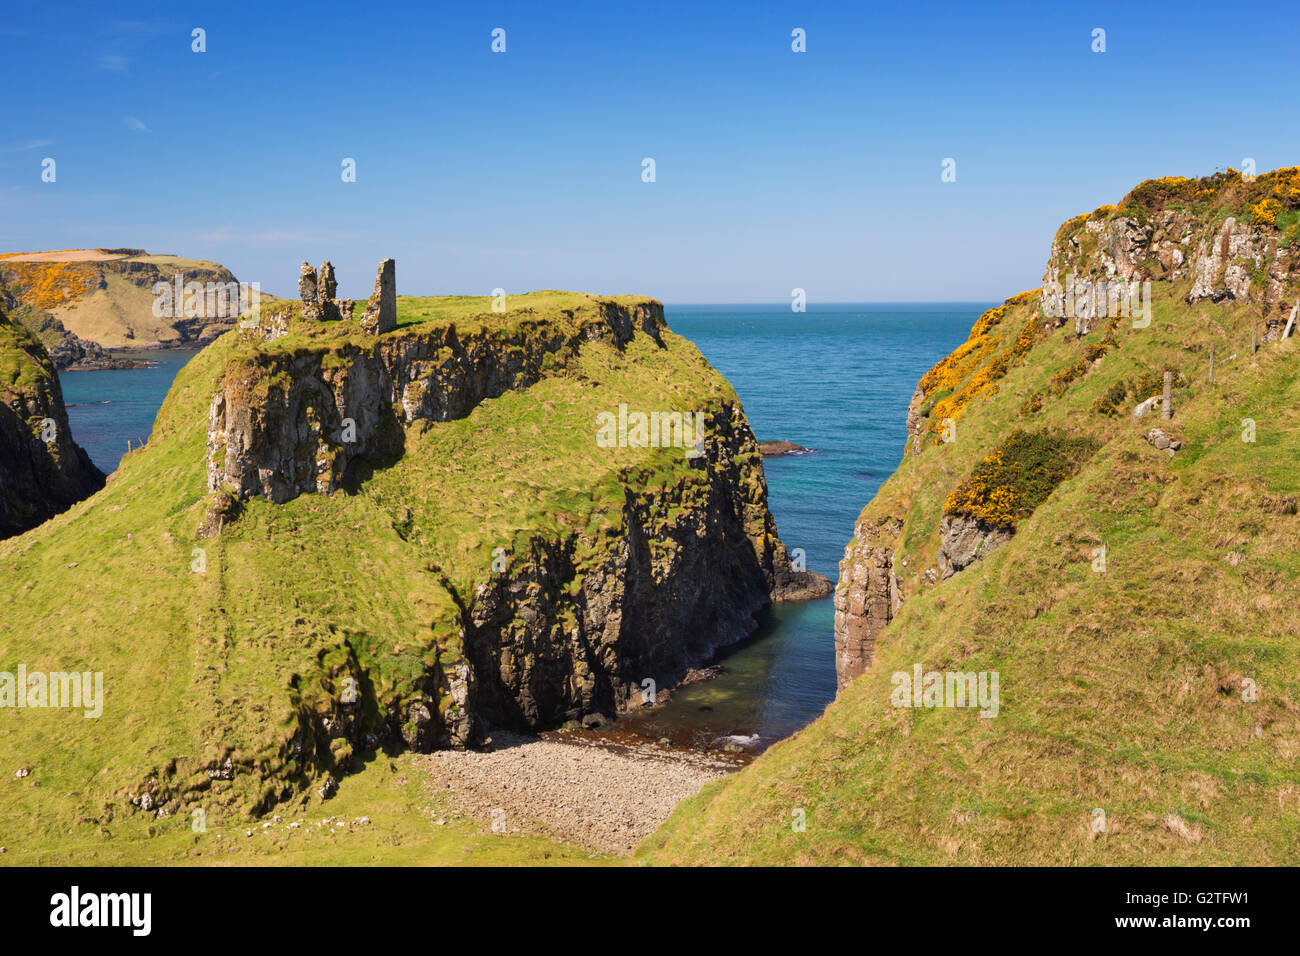 Cliffs with the ruins of Dunseverick Castle along the Causeway Coastal Way on the coast of Northern Ireland. Photographed - Stock Image